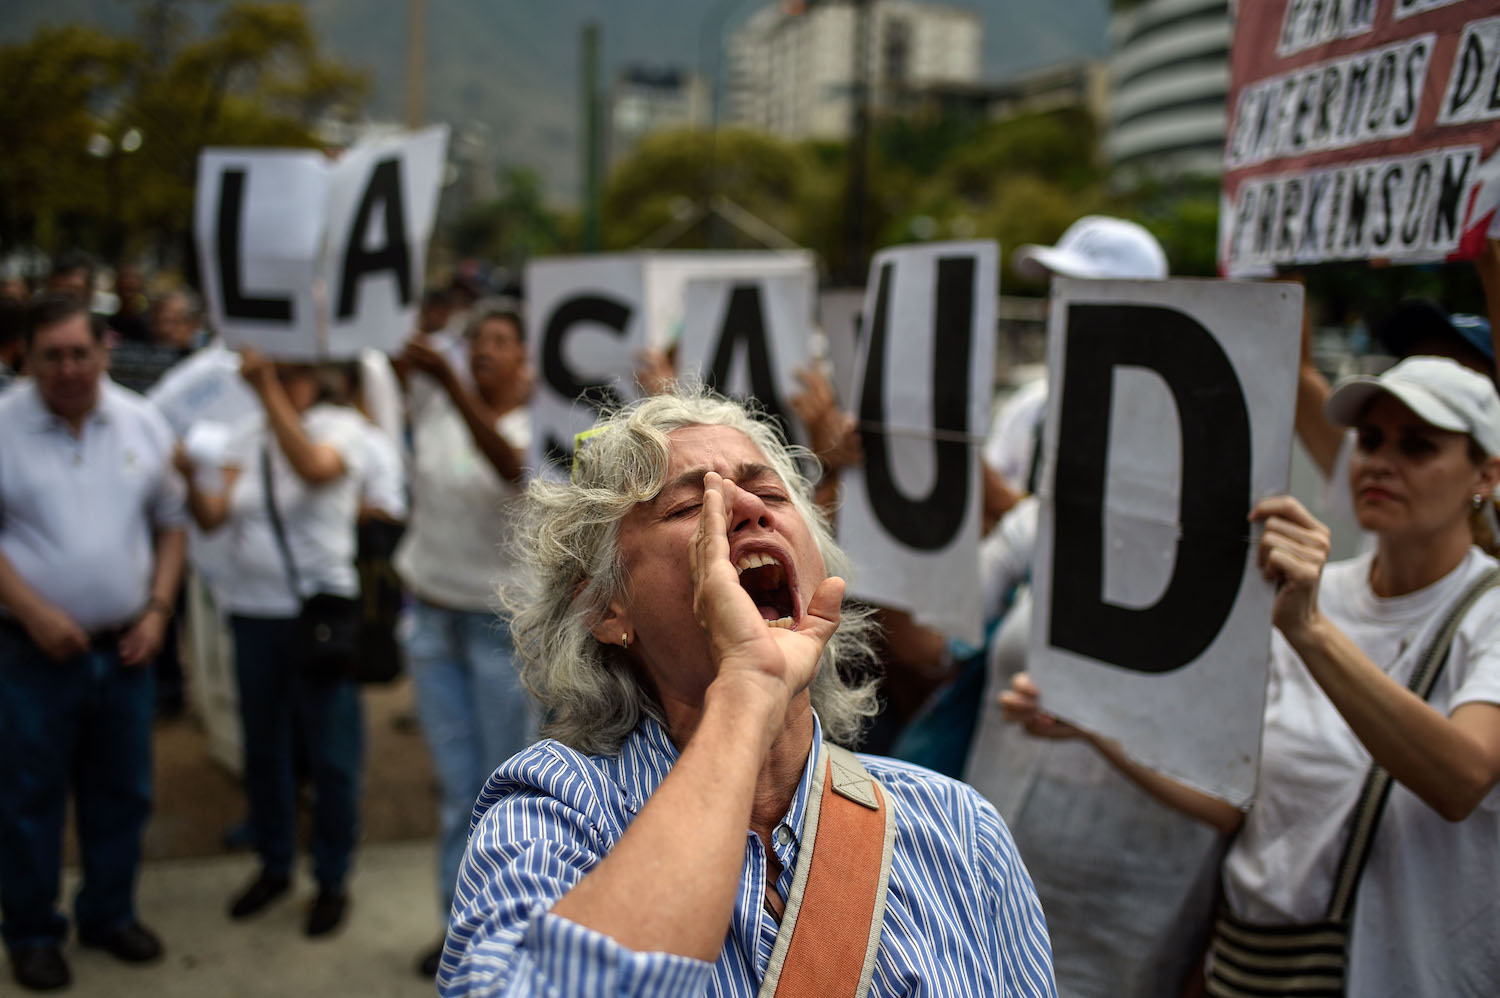 A woman chants slogans during an anti-government demonstration protesting for the shortage of medicines in Caracas on April 9, 2018. / AFP PHOTO / FEDERICO PARRA        (Photo credit should read FEDERICO PARRA/AFP/Getty Images)